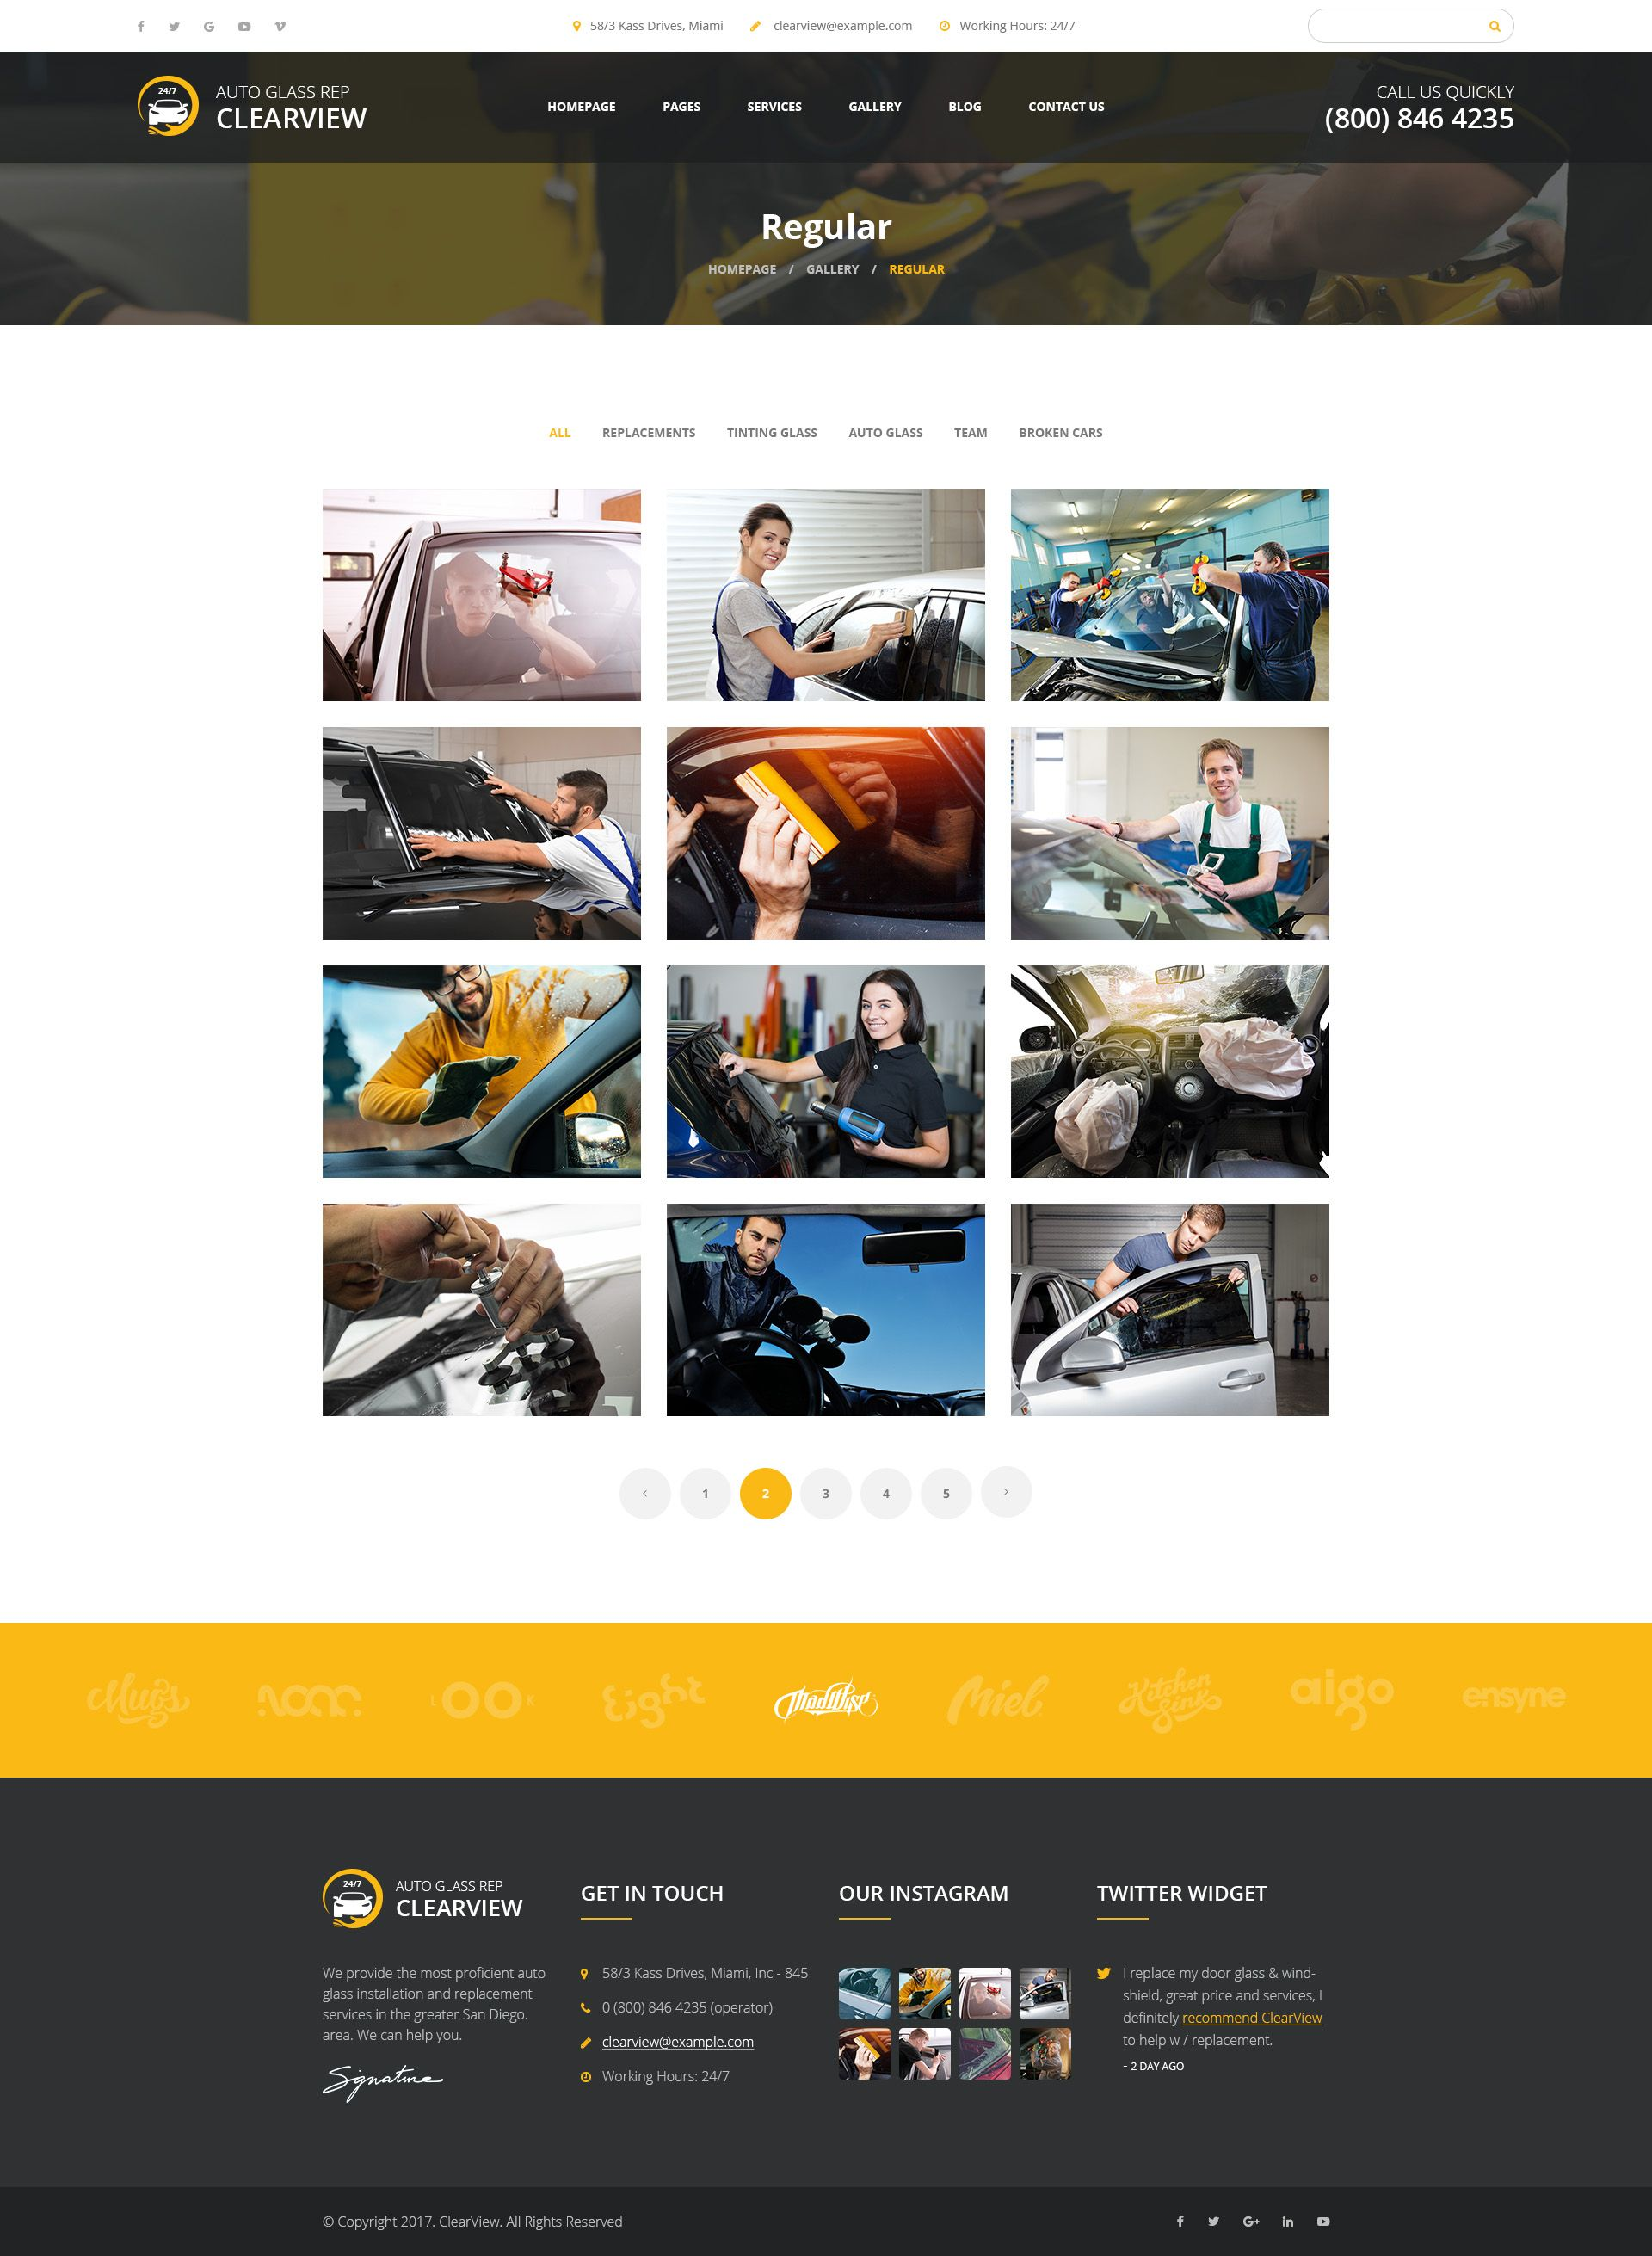 ClearView - Auto Glass Repair, Replacement and Window Tinting PSD Template #Glass, #Repair, #ClearView, #Auto #glassrepair